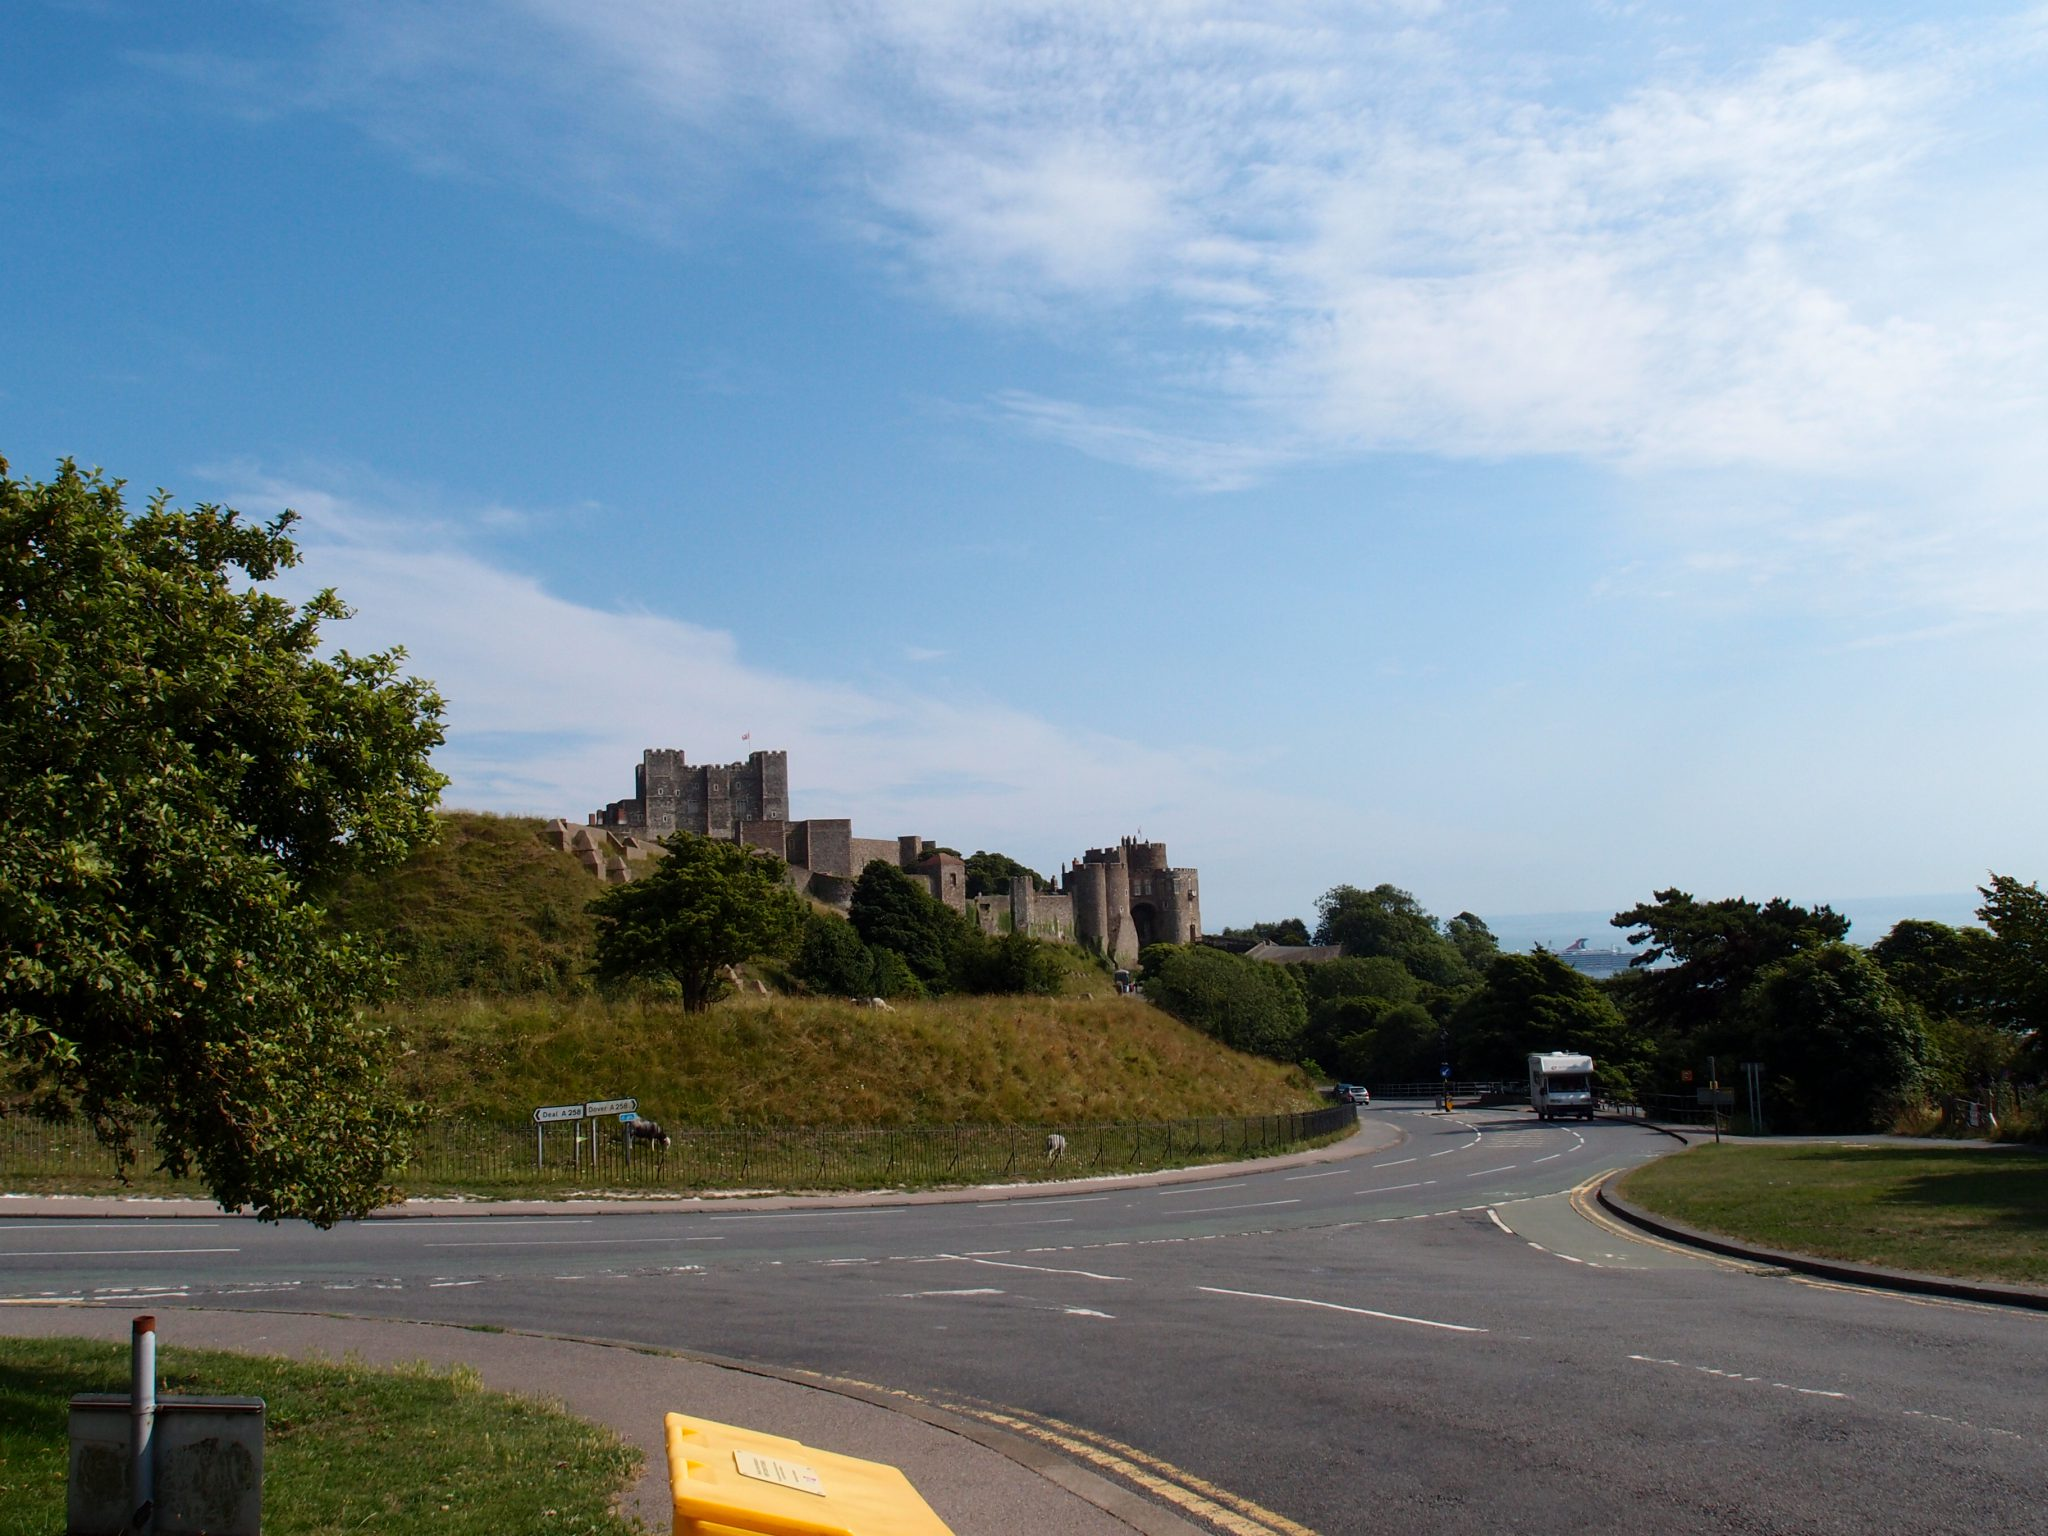 Steve paused, so I could take this fast-photo of Dover Castle. I shall try to visit the Castle, on a future Kent-journey.